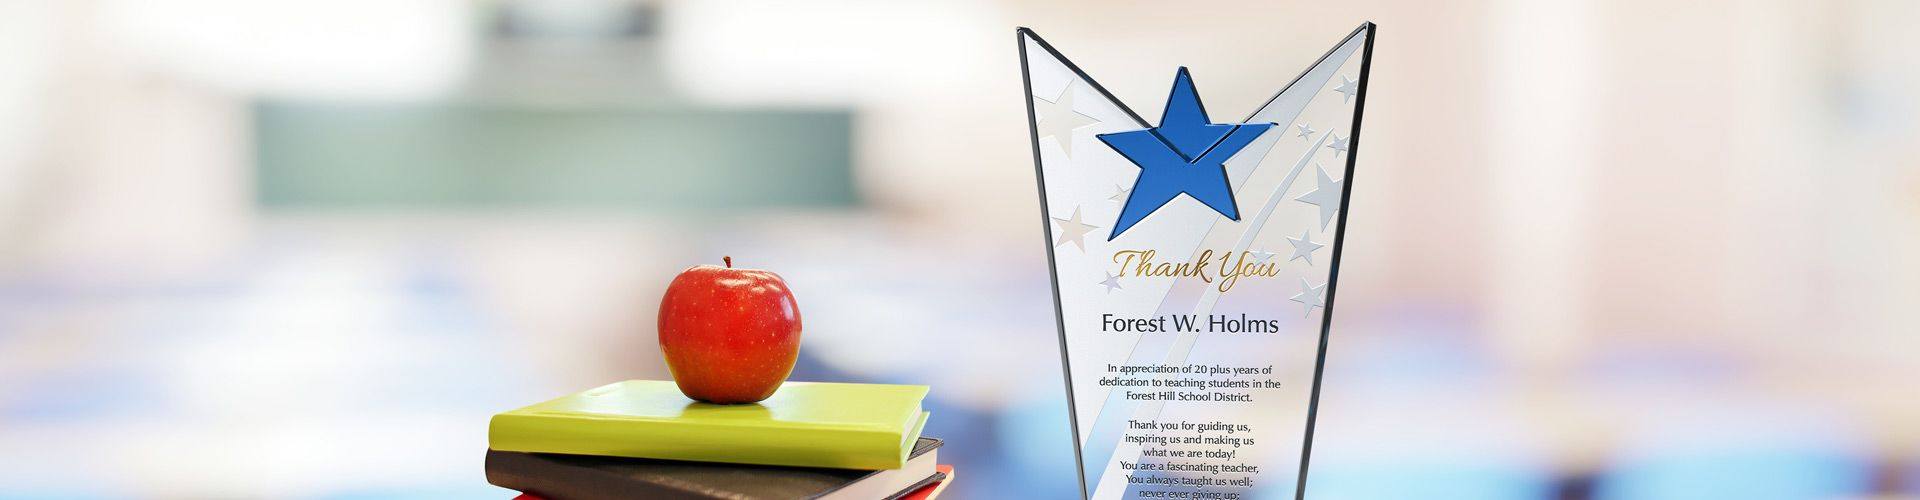 Custom Crystal Plaques and Awards for Teachers - Banner 1